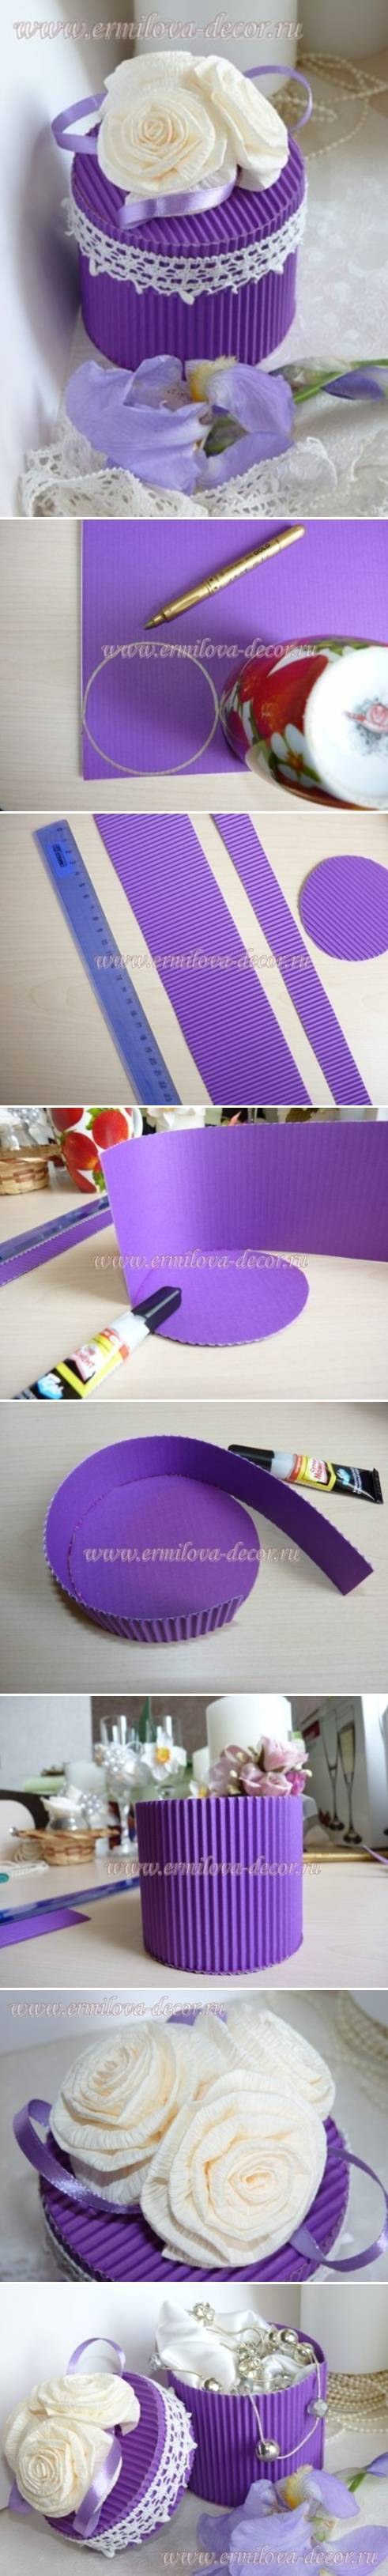 How To Make Corrugated Paper Gift Box step by step DIY tutorial instructions